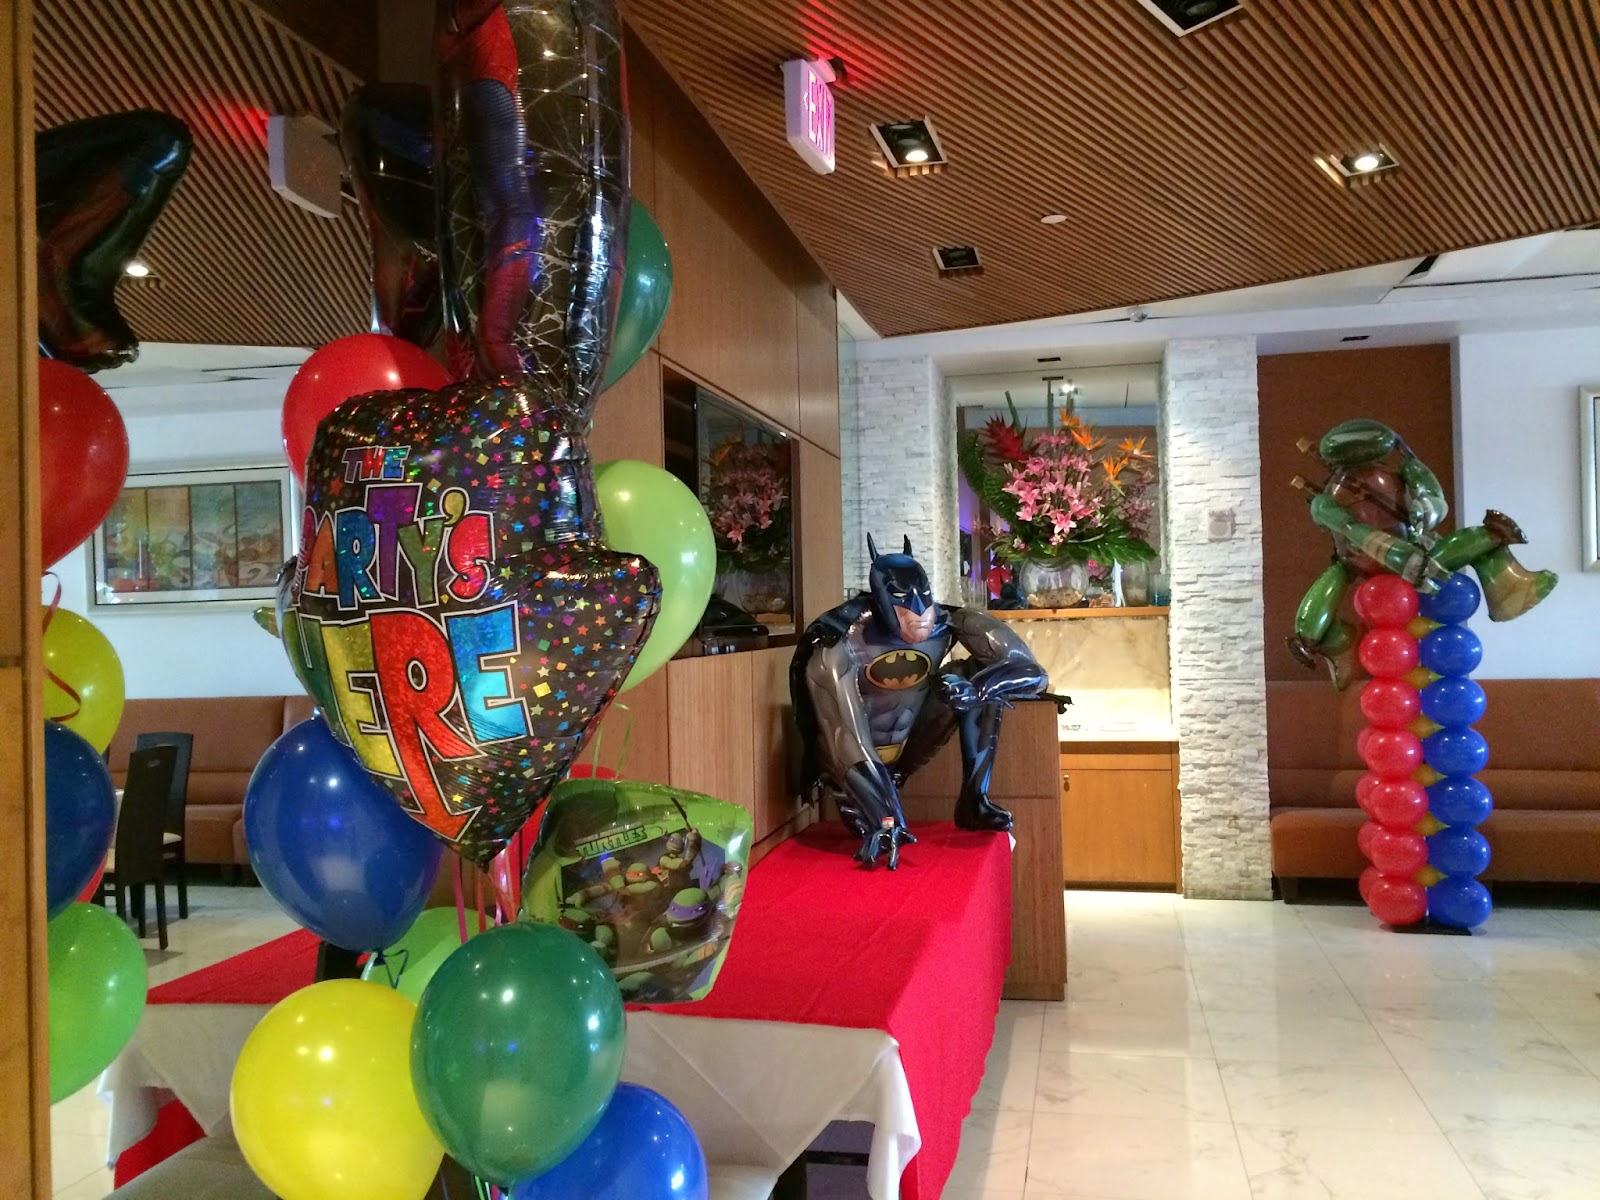 Batman, Spiderman, Ninja Turtle themed party decoration by balloons sculpture